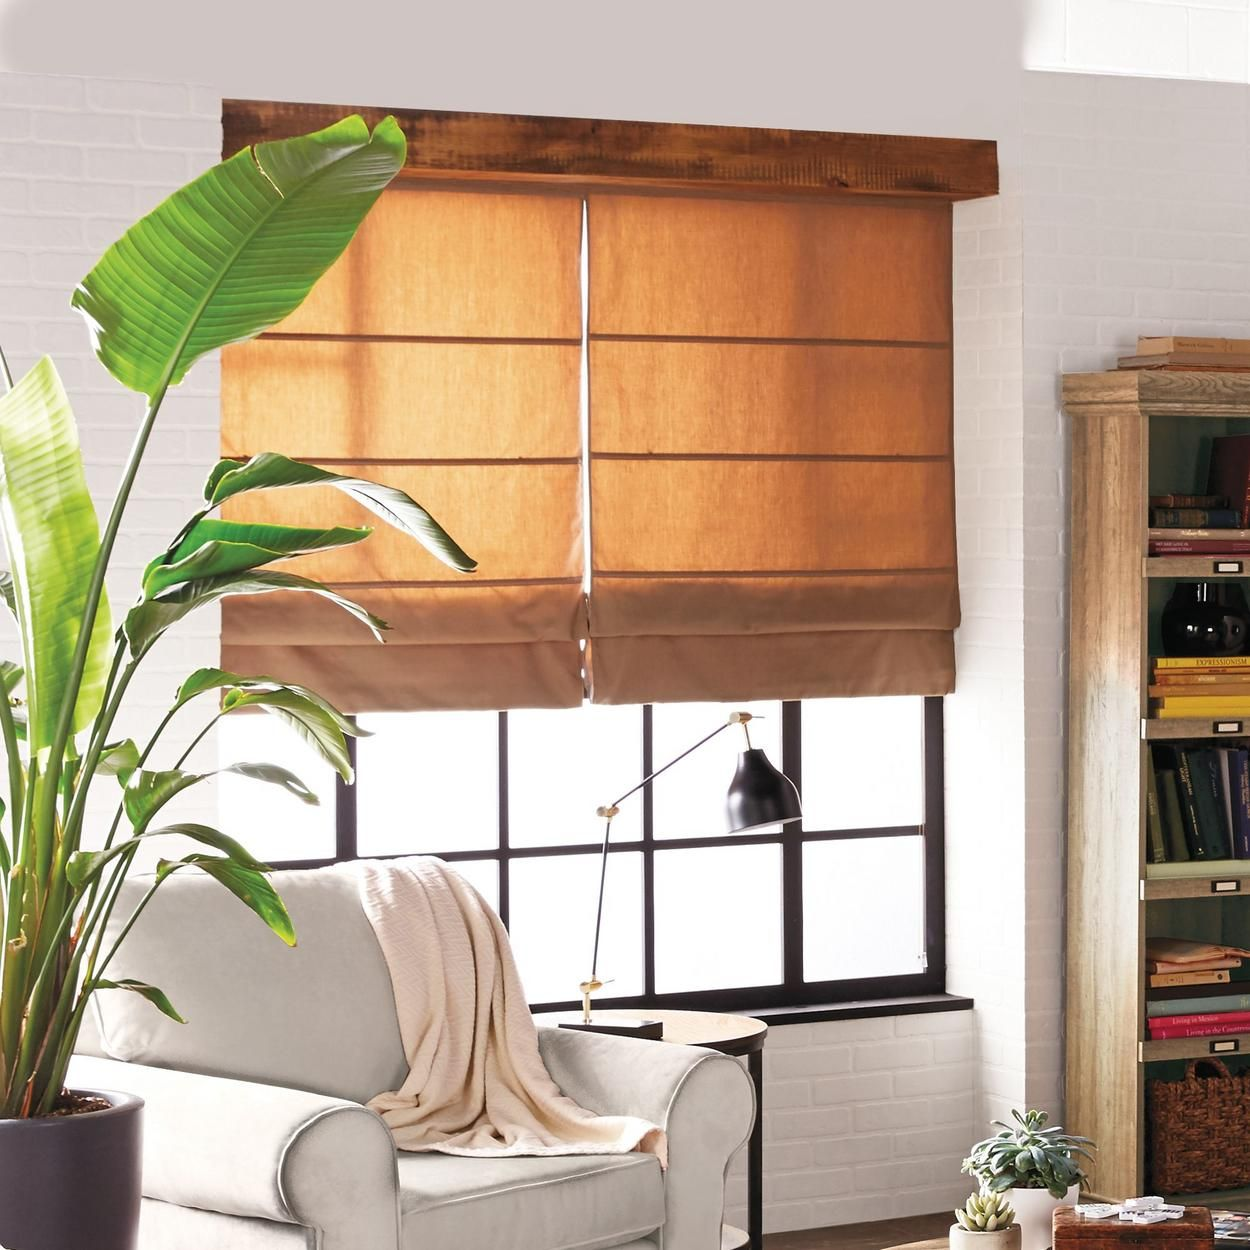 Canvas Roman Shade For 19 99 Buying Appliances